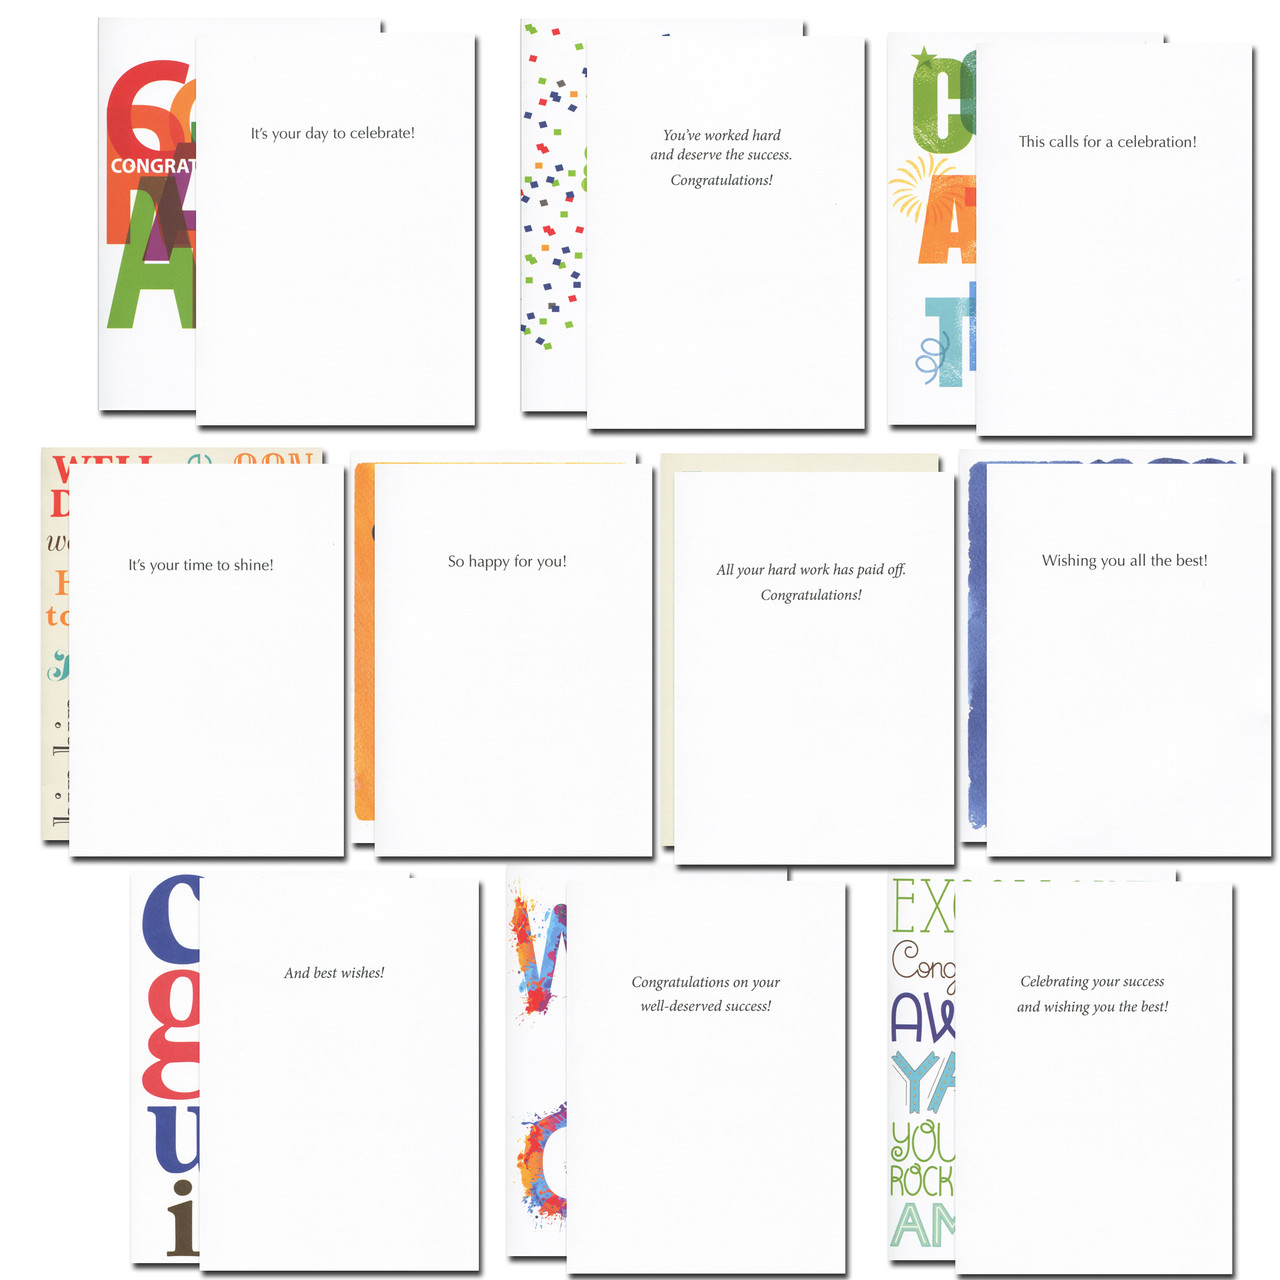 Insides of celebrations congratulations card assortment have short congratulatory messages